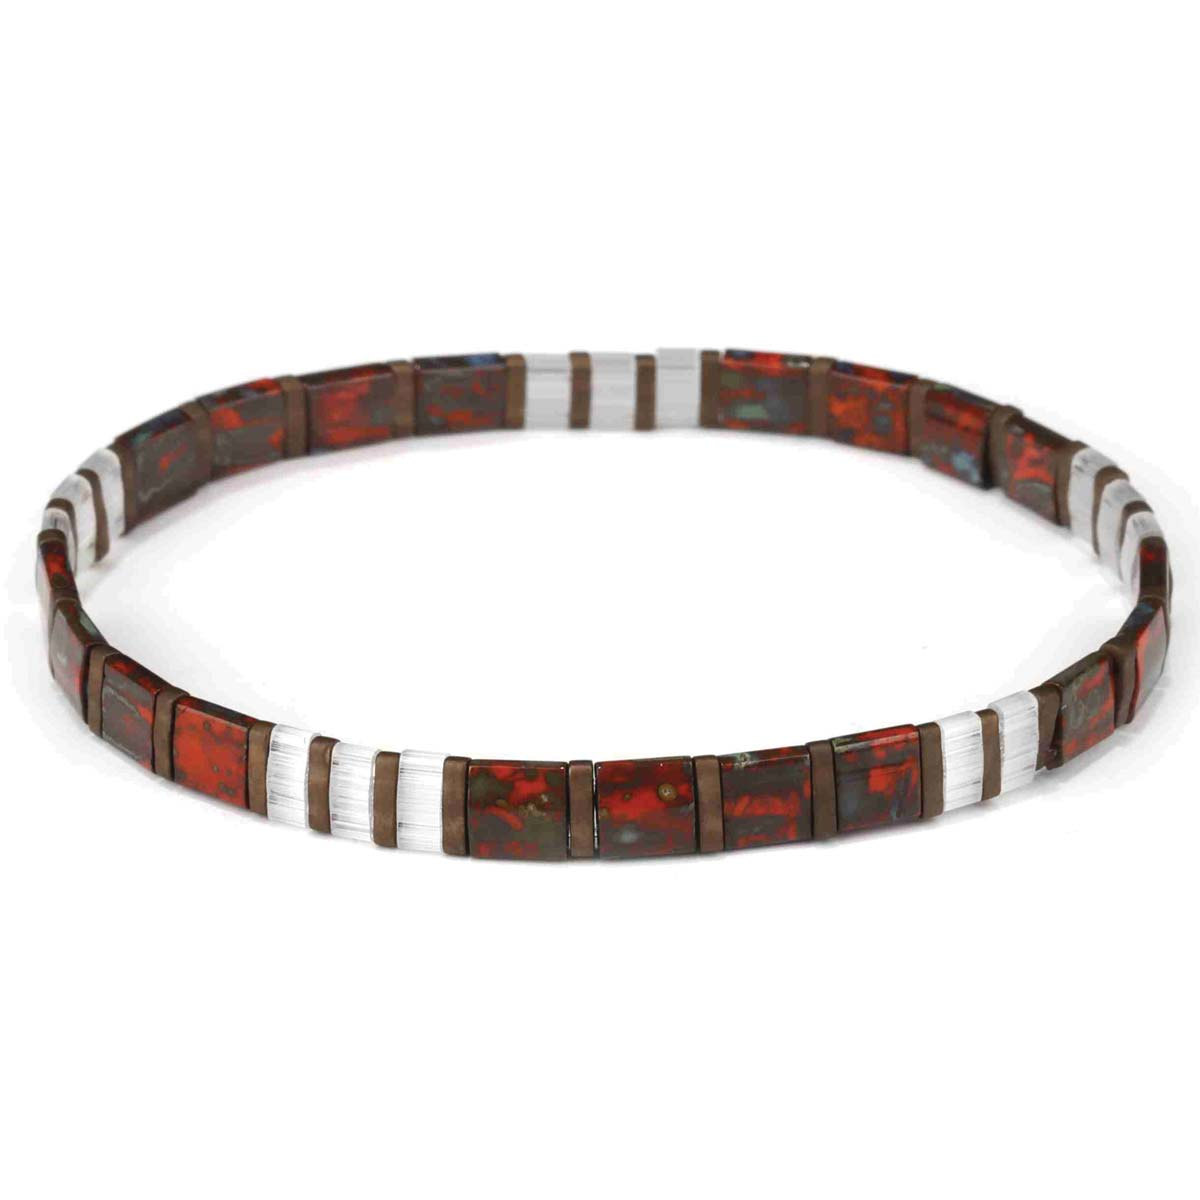 Marbled Red & White Bead Tila Bracelet